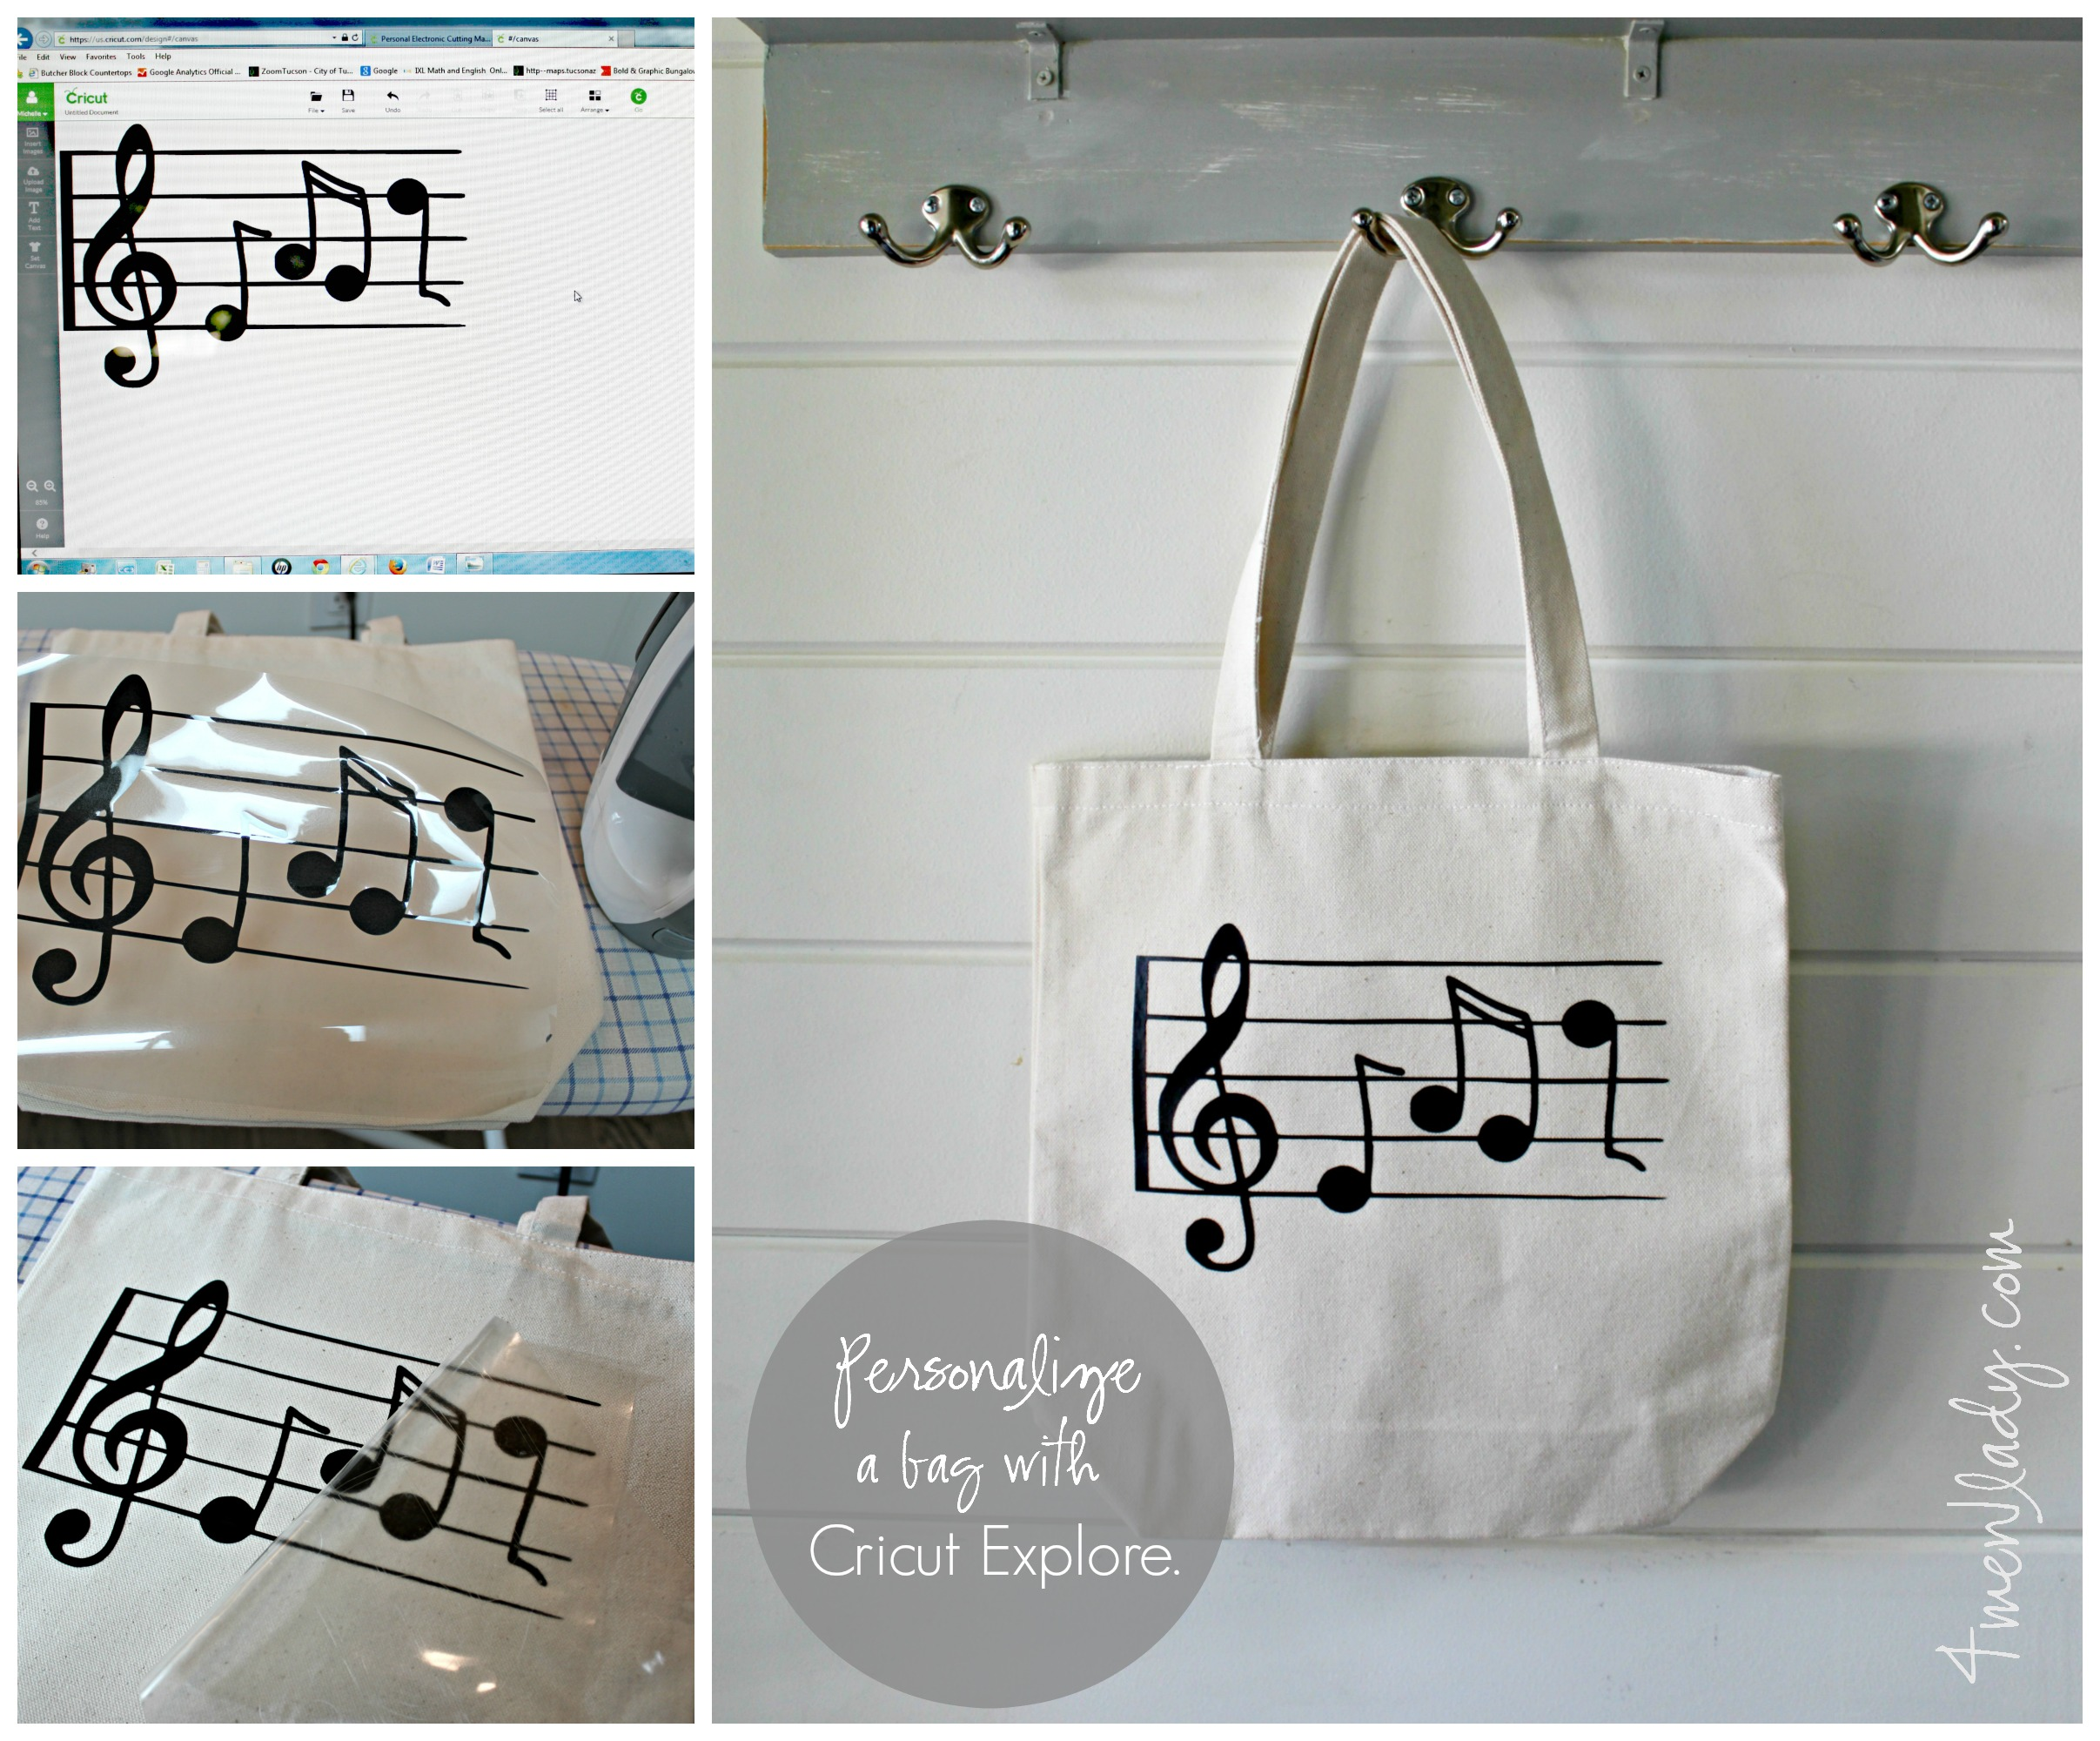 d569b70e2 Personalized tote bags made with Cricut Explore (and a breast story).